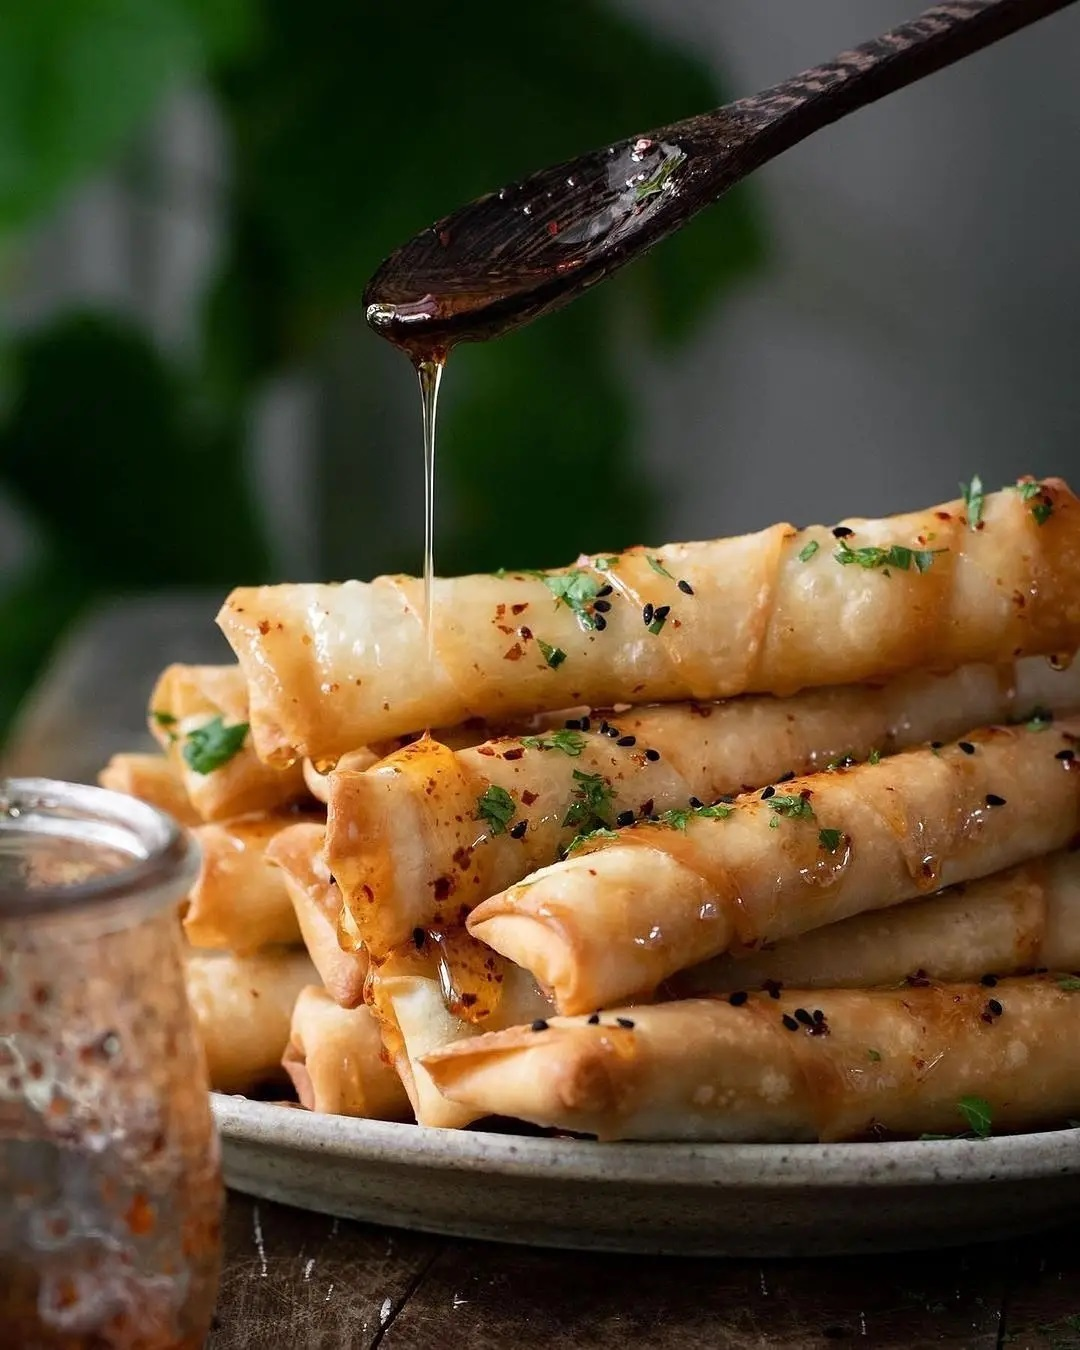 crispy vegan cheese & herb rolls drizzled with aleppo chili display image ac